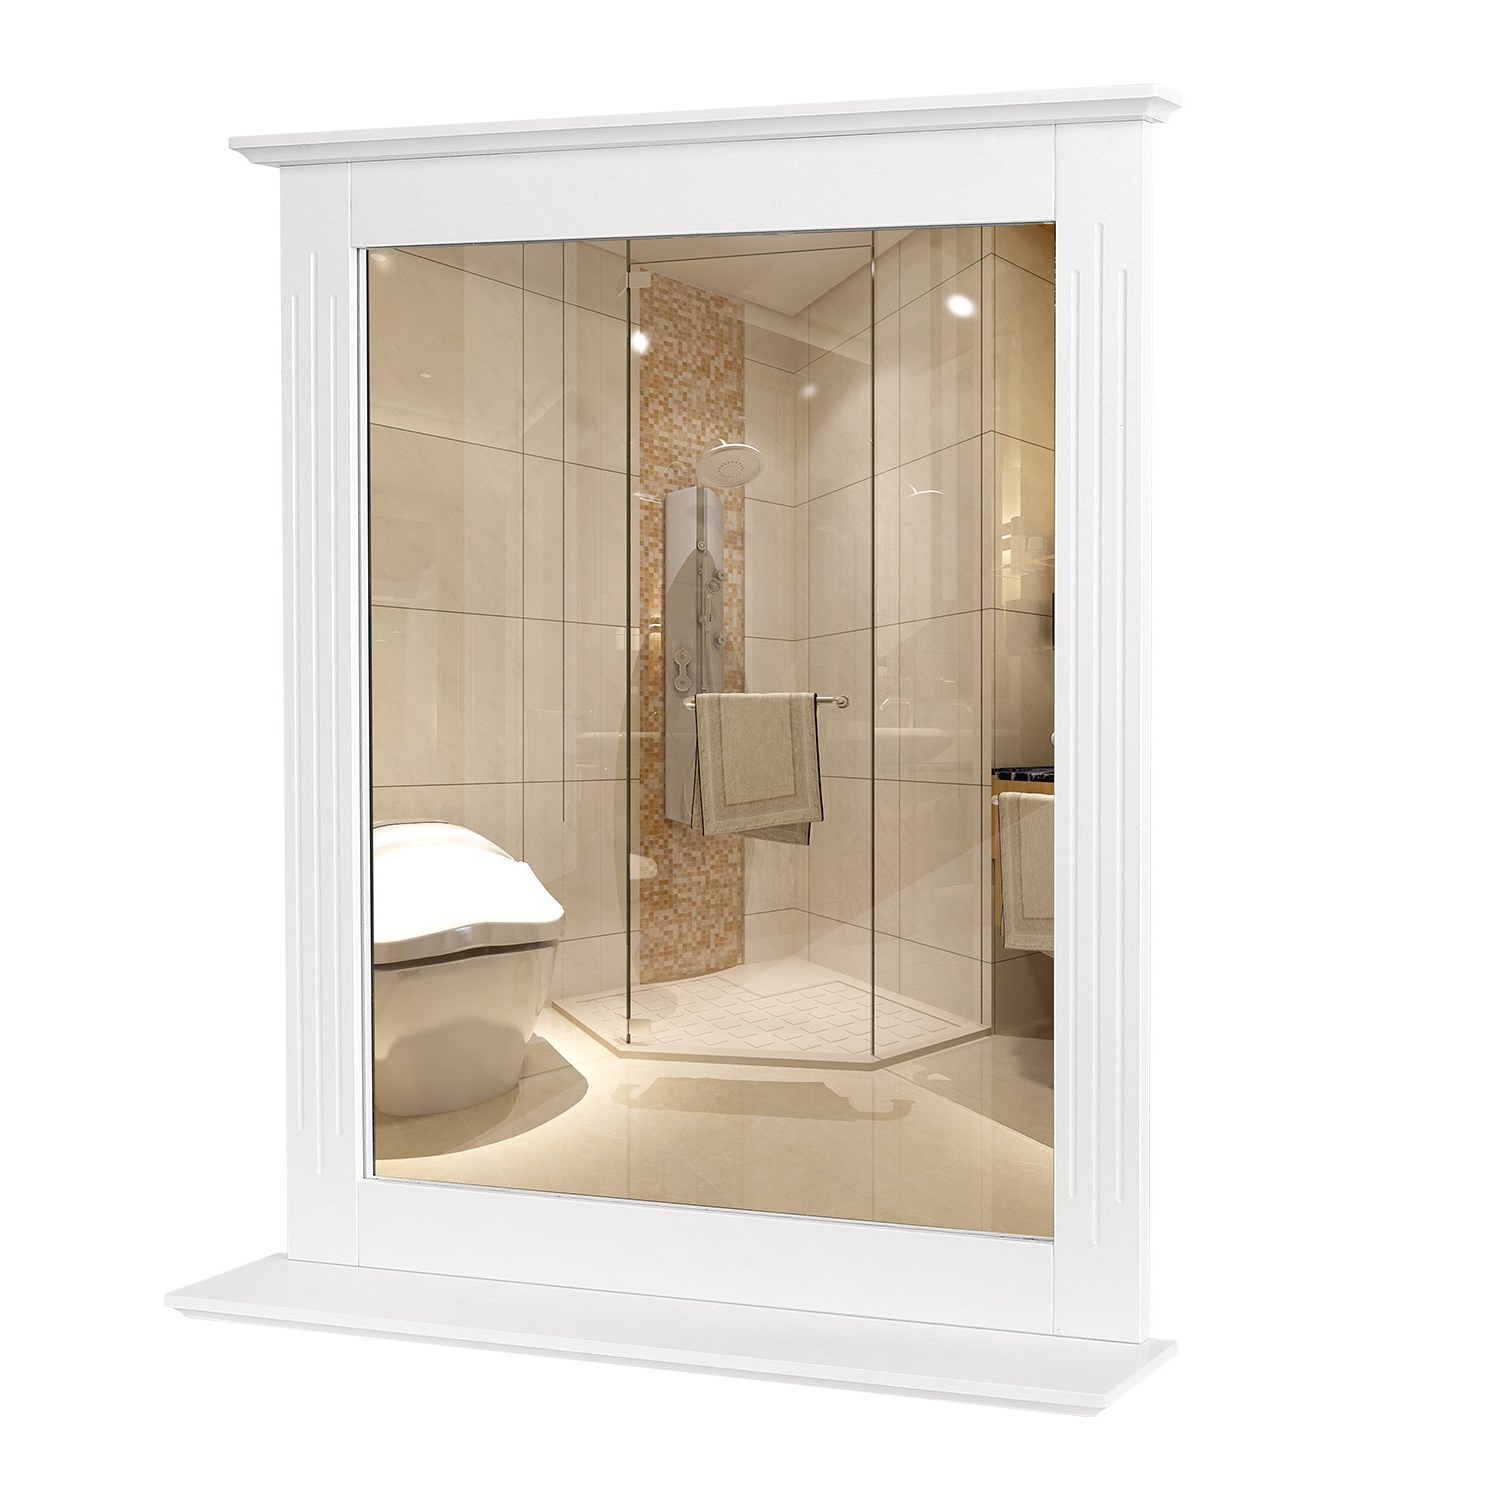 Homfa Bathroom Wall Mirror Vanity Mirror Makeup Mirror Framed Mirror With  Shelf For Home Multipurpose White Intended For Widely Used Bathroom Wall Mirrors (Gallery 14 of 20)